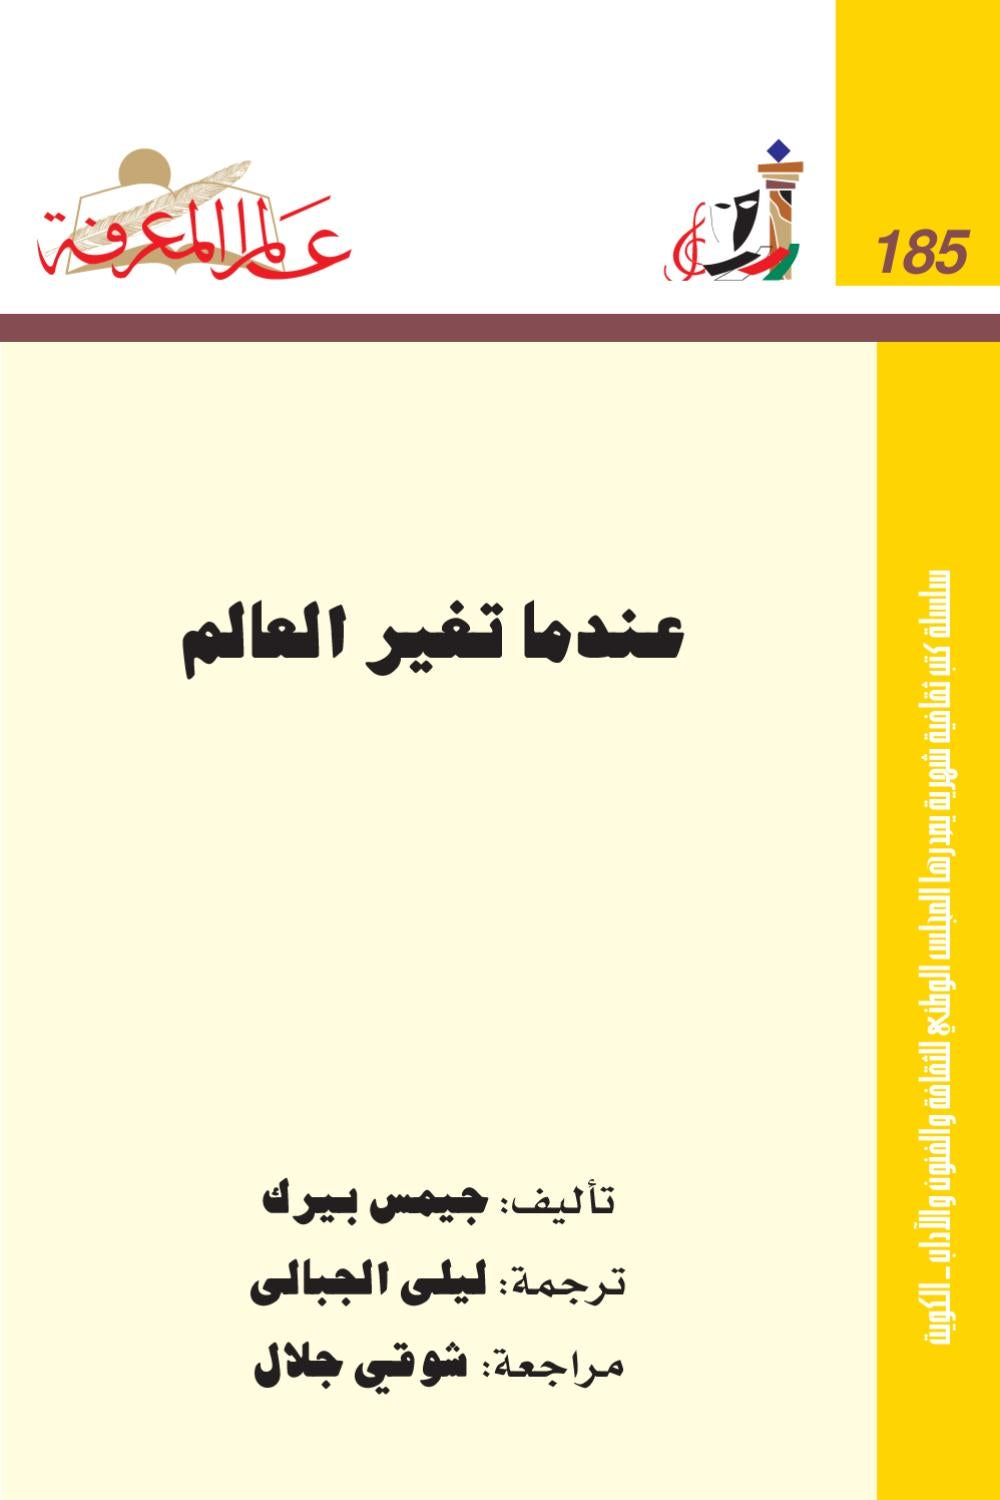 b2df3b0c9 185 by Qmr alzman - issuu